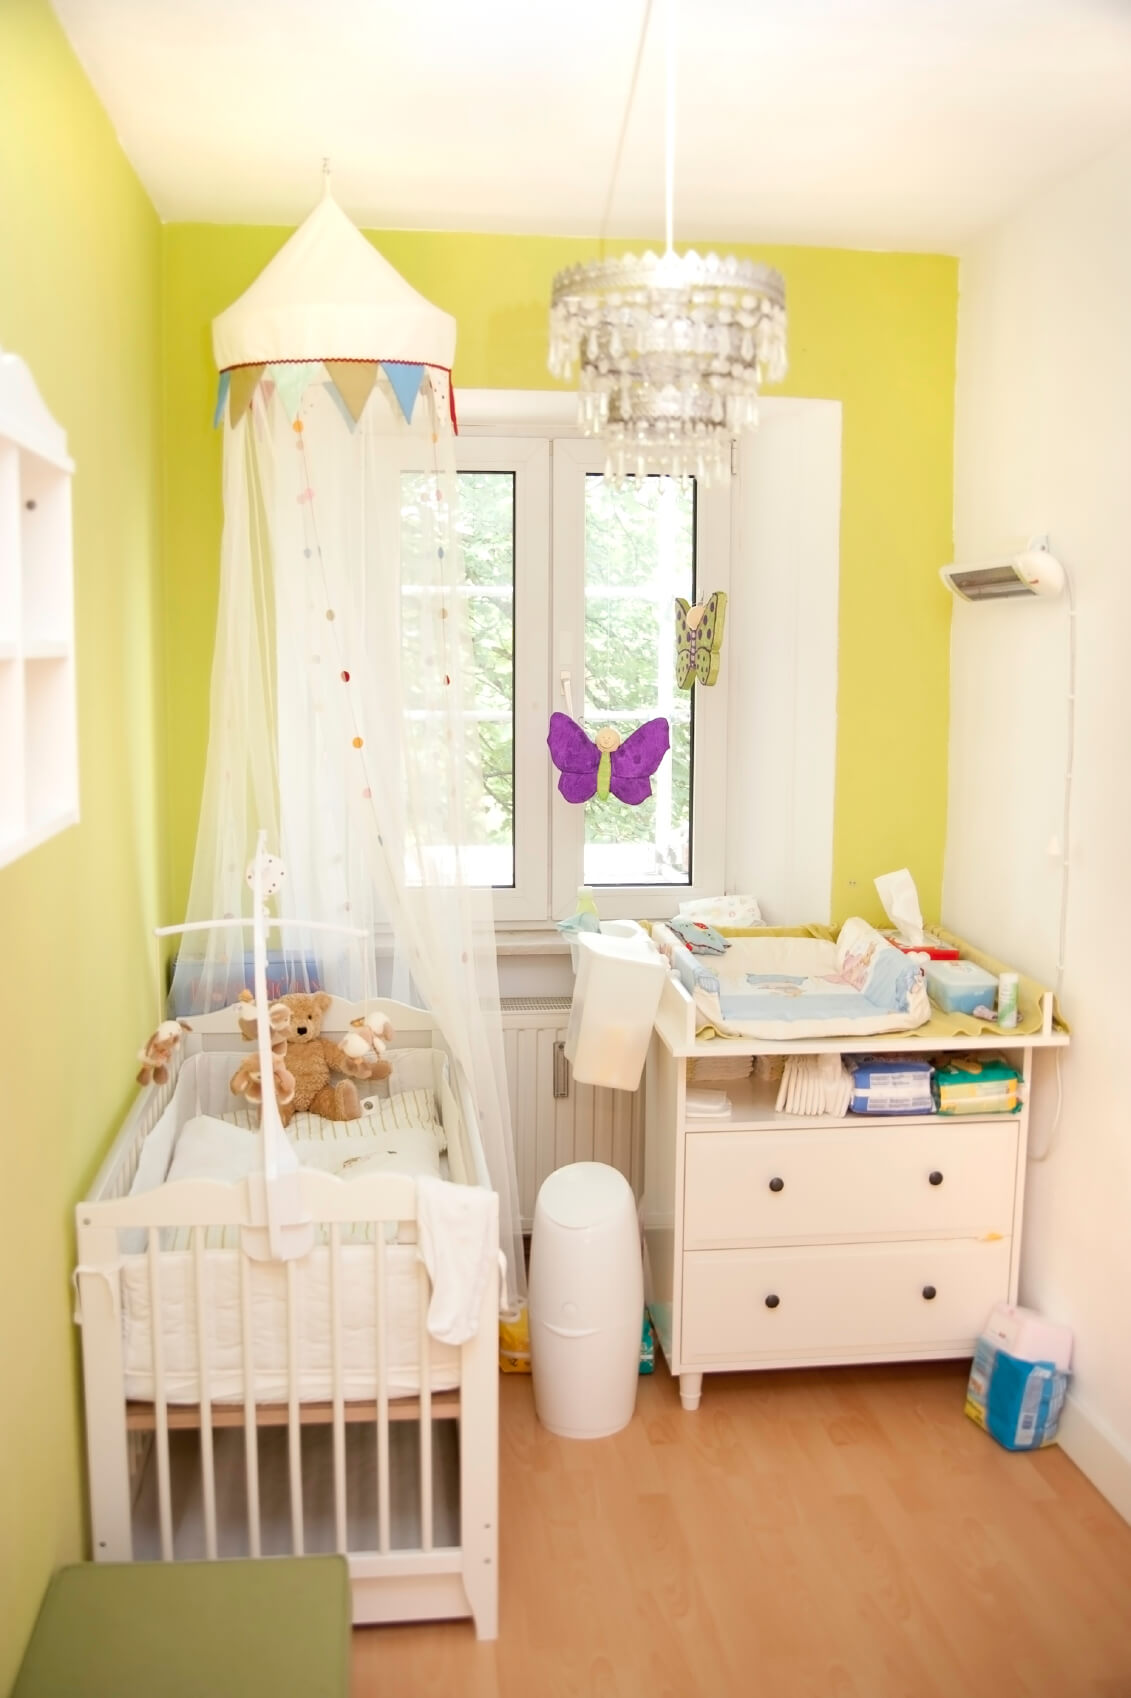 28 neutral baby nursery ideas themes designs pictures for Nursery room ideas for small rooms